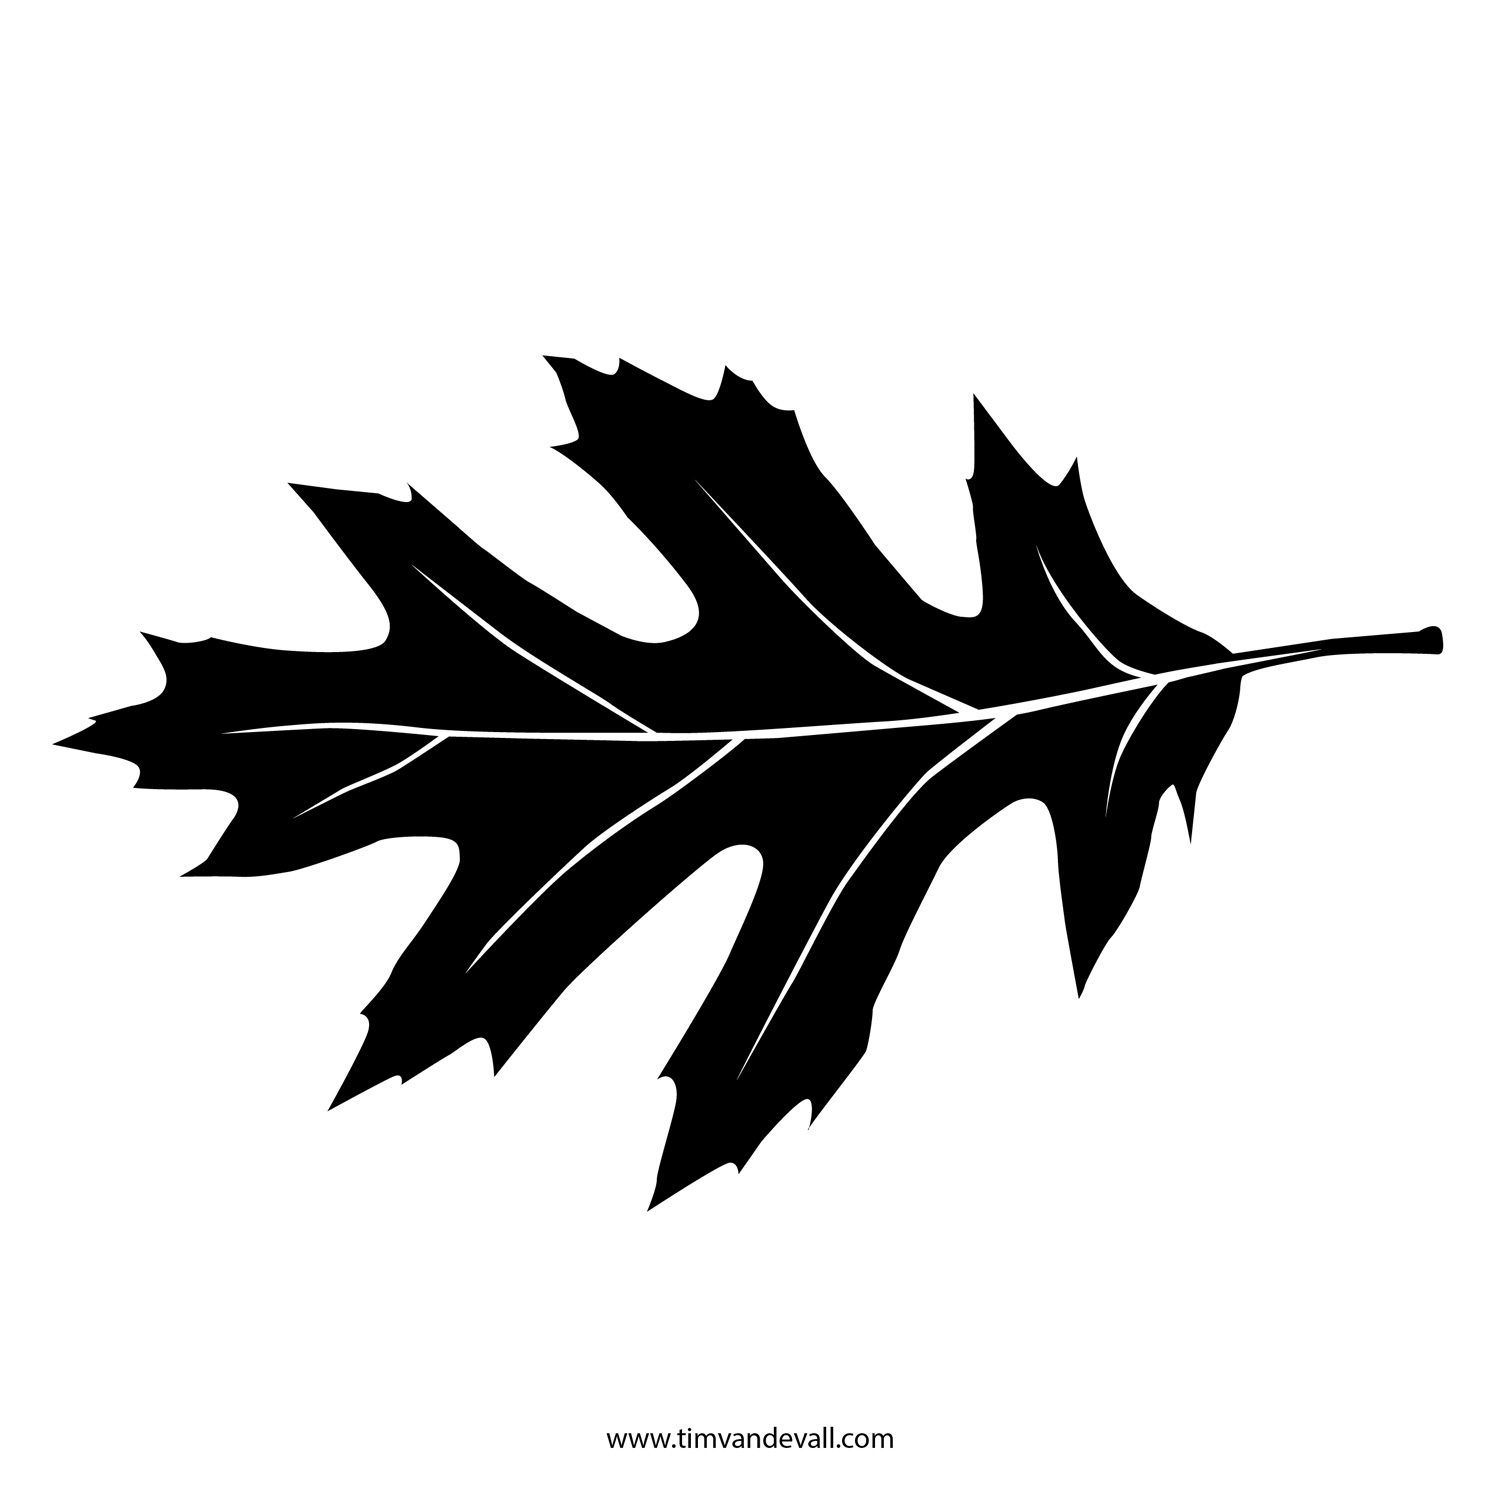 Printable Leaf Stencil, Outline, and Silhouette